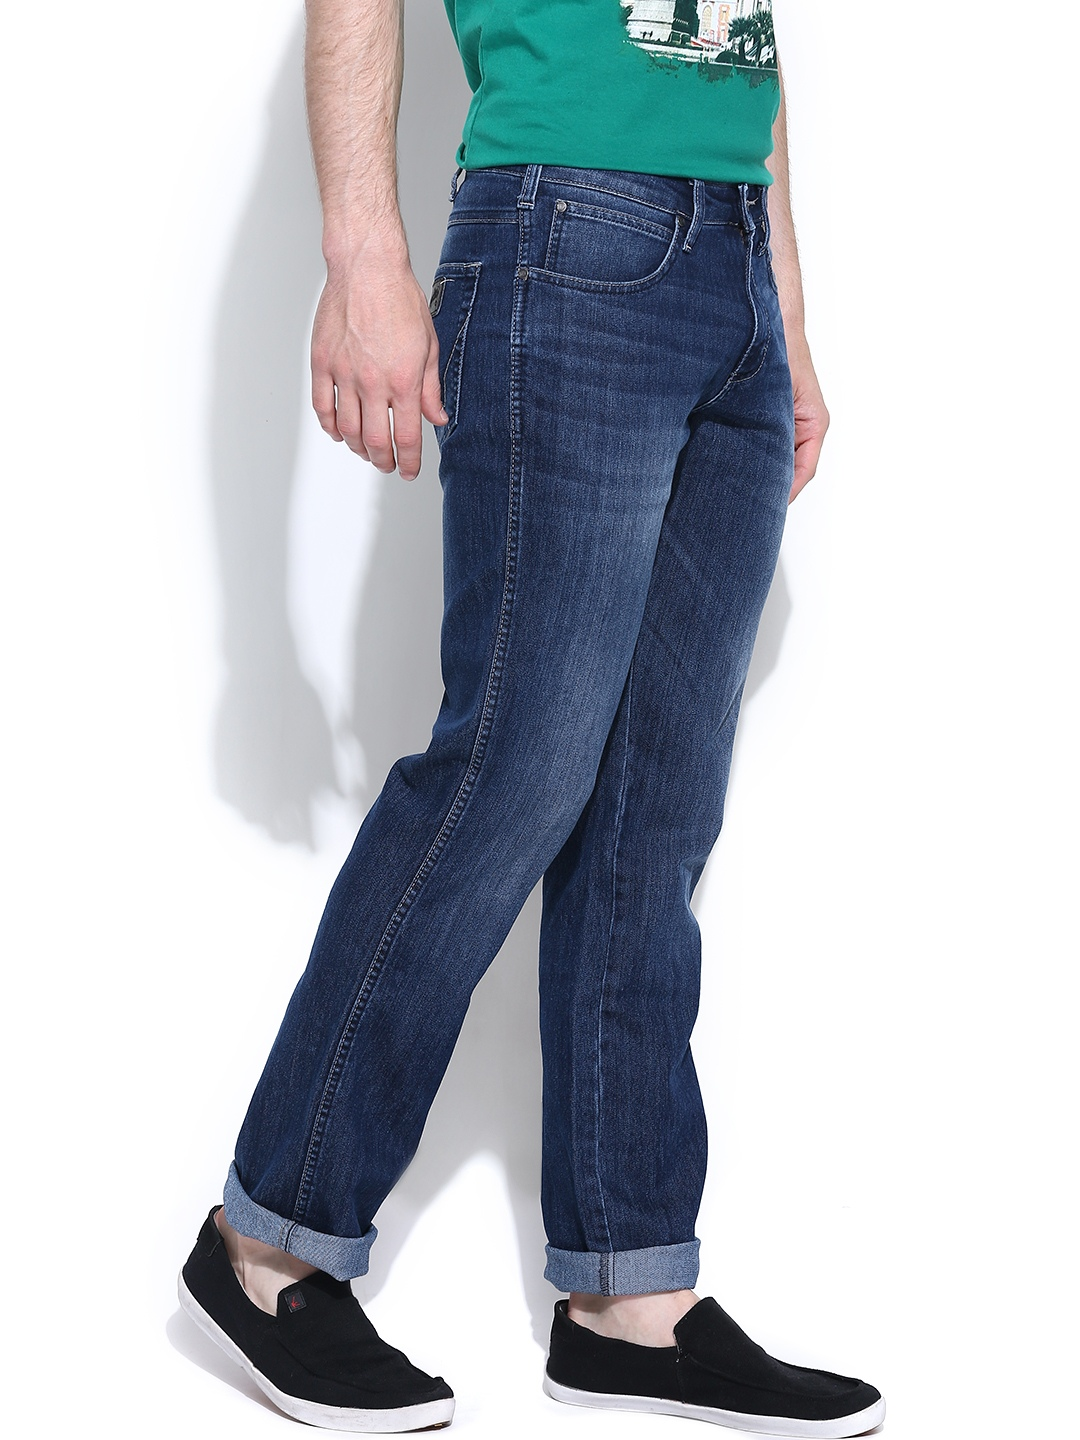 Washed Millard Straight Fit Jeans 826754 | Buy Myntra Wrangler Jeans ...